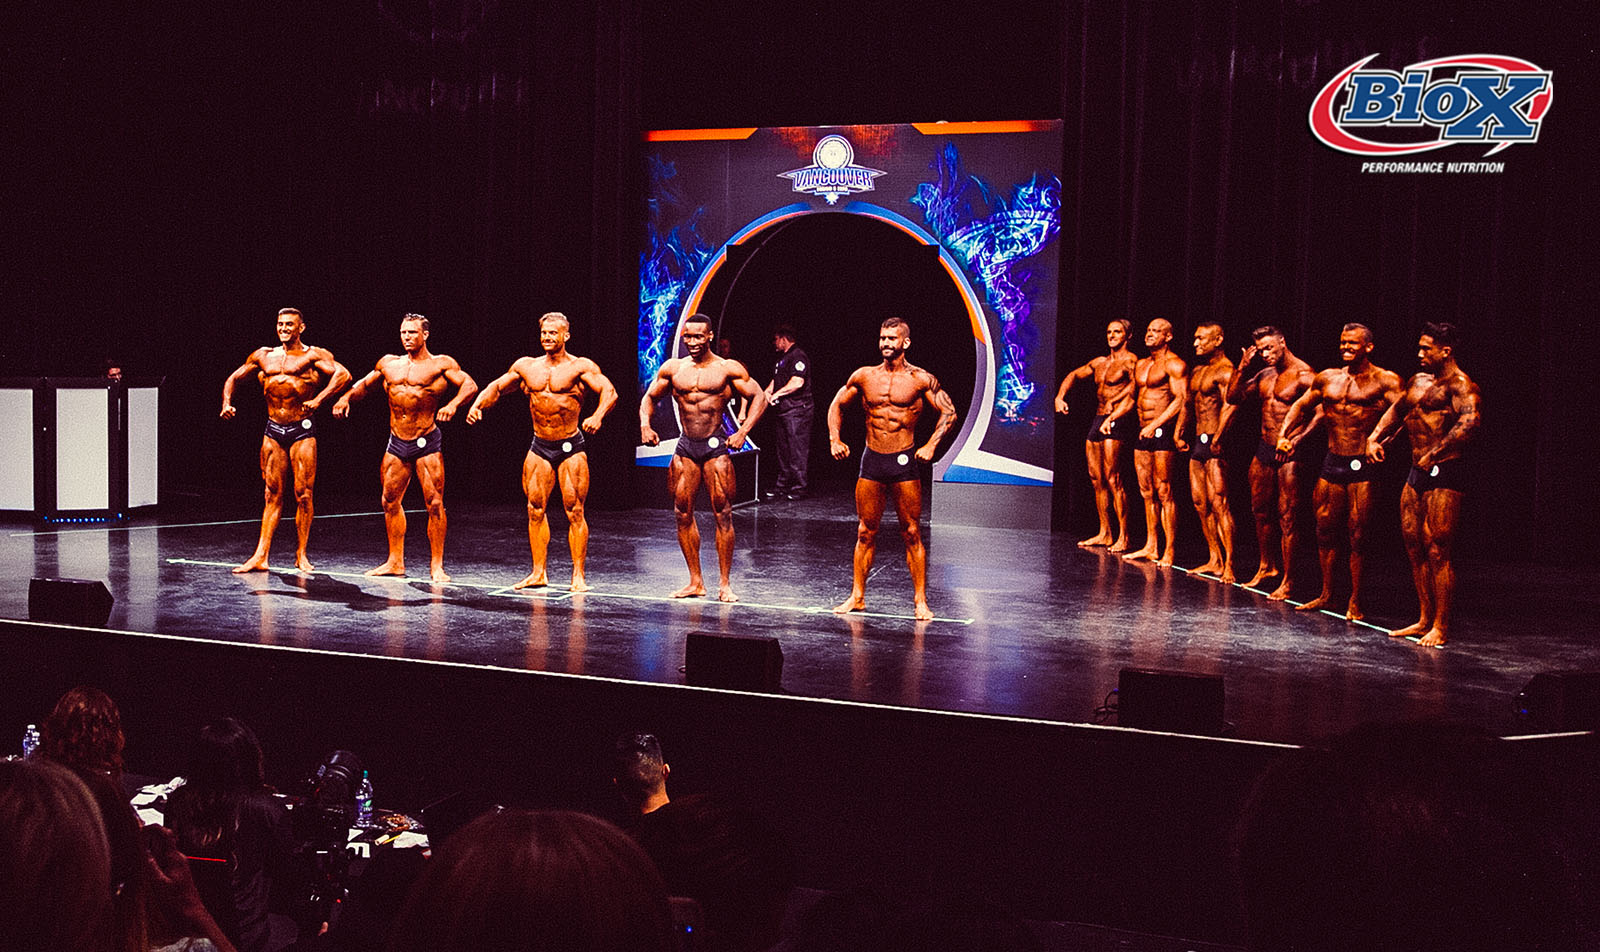 Highlights from the Vancouver Pro/Am & Expo